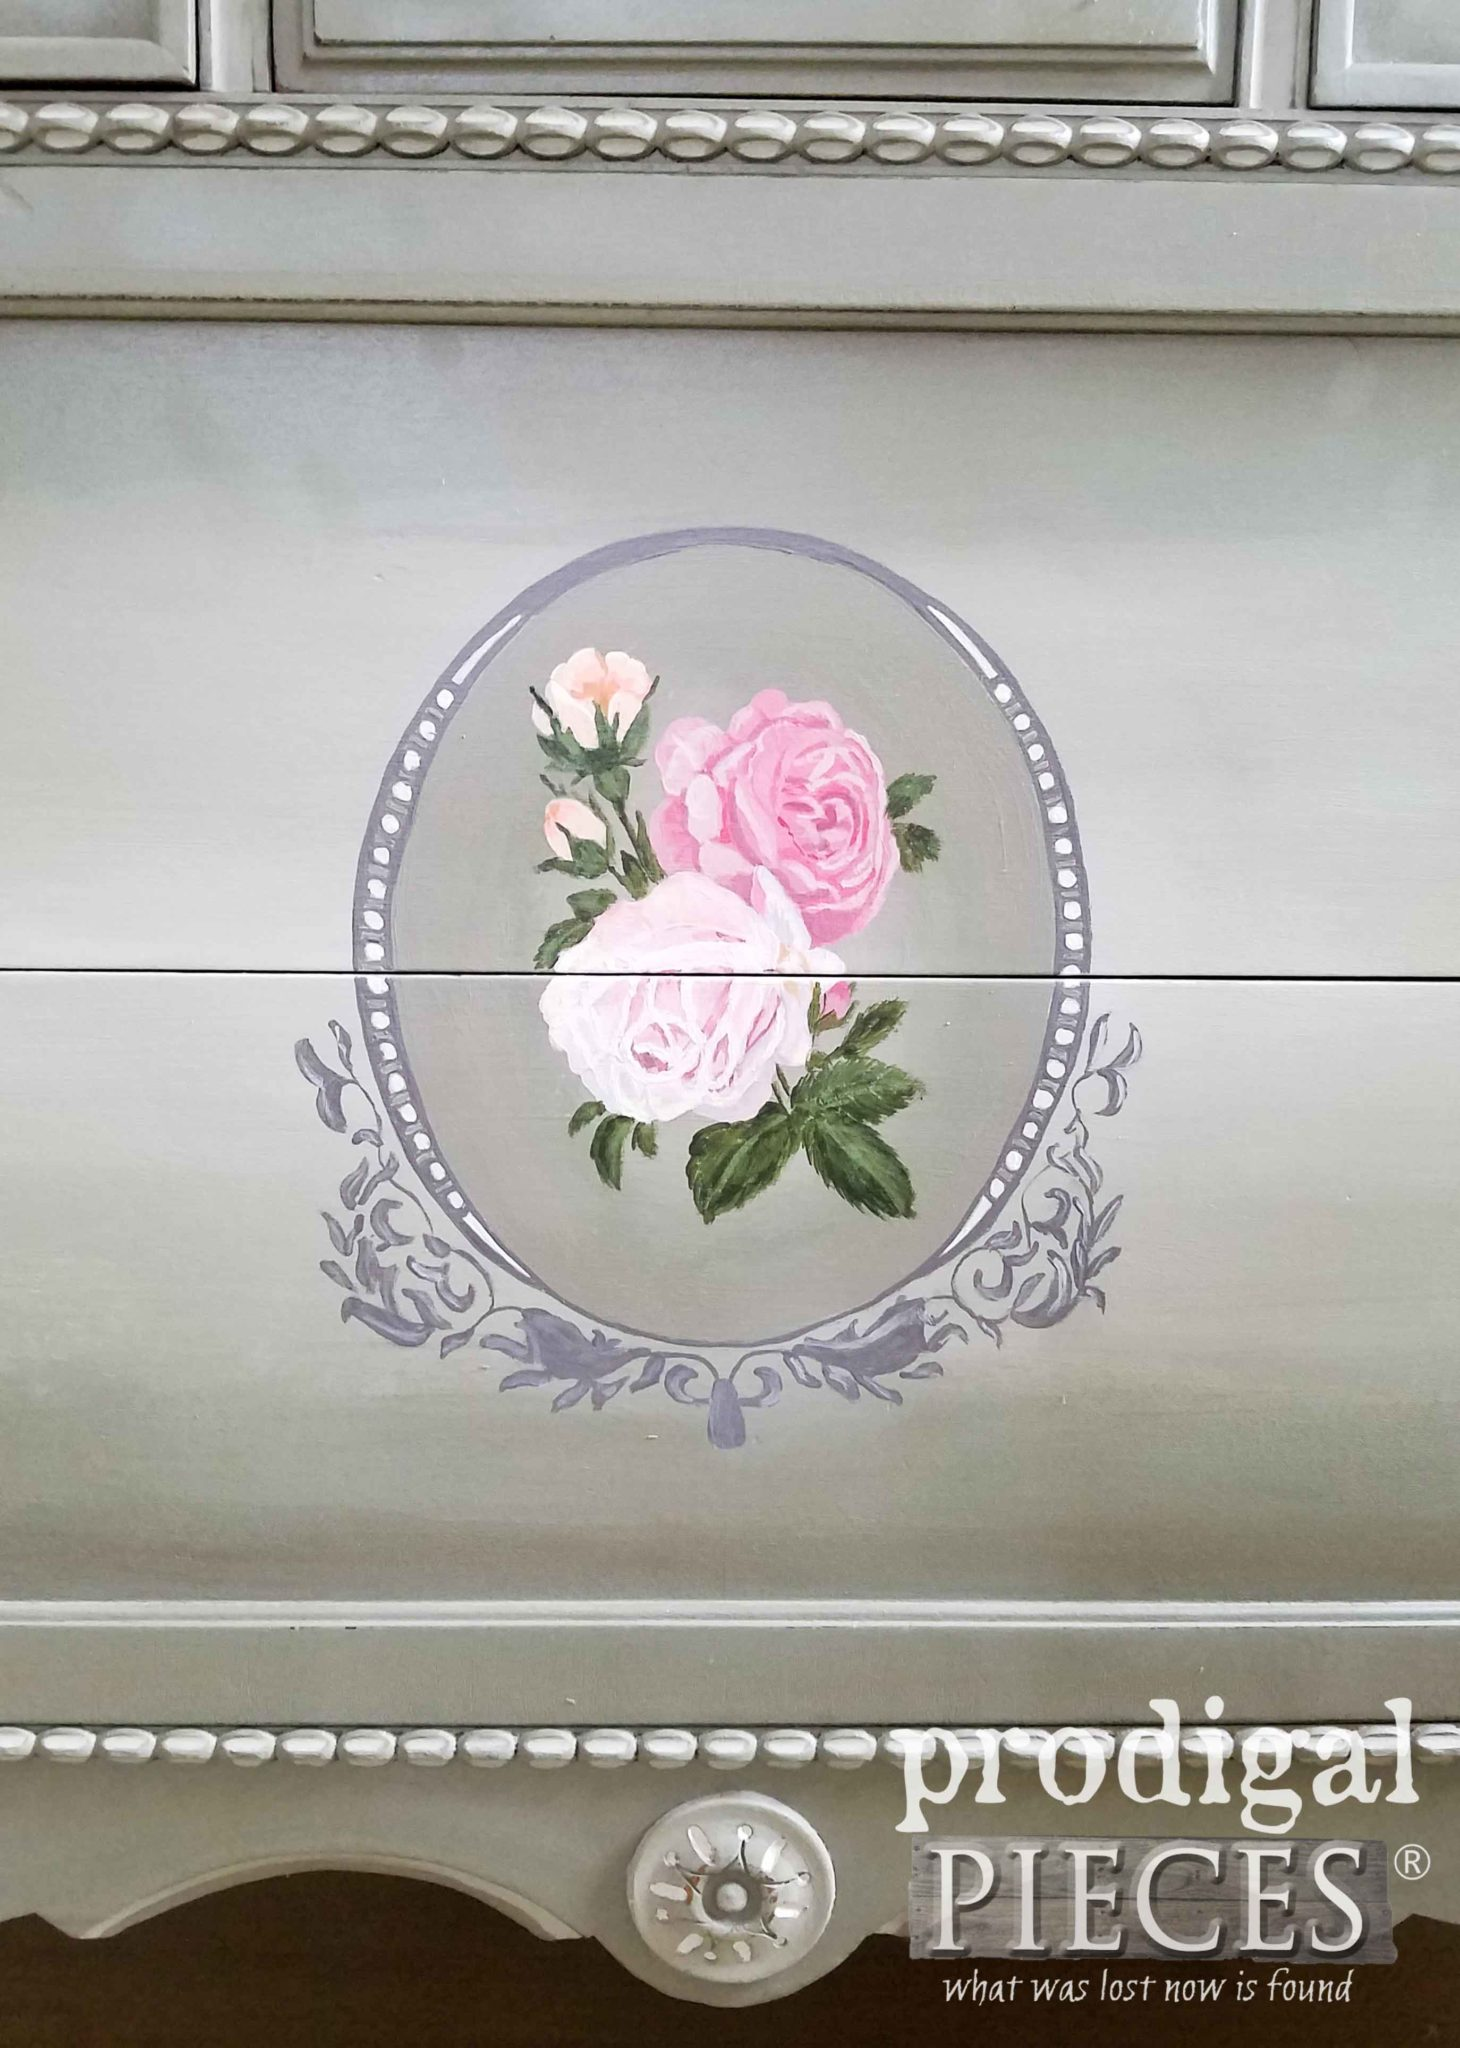 Hand-Painted Roses on Antique Dresser by Larissa of Prodigal Pieces | prodigalpieces.com